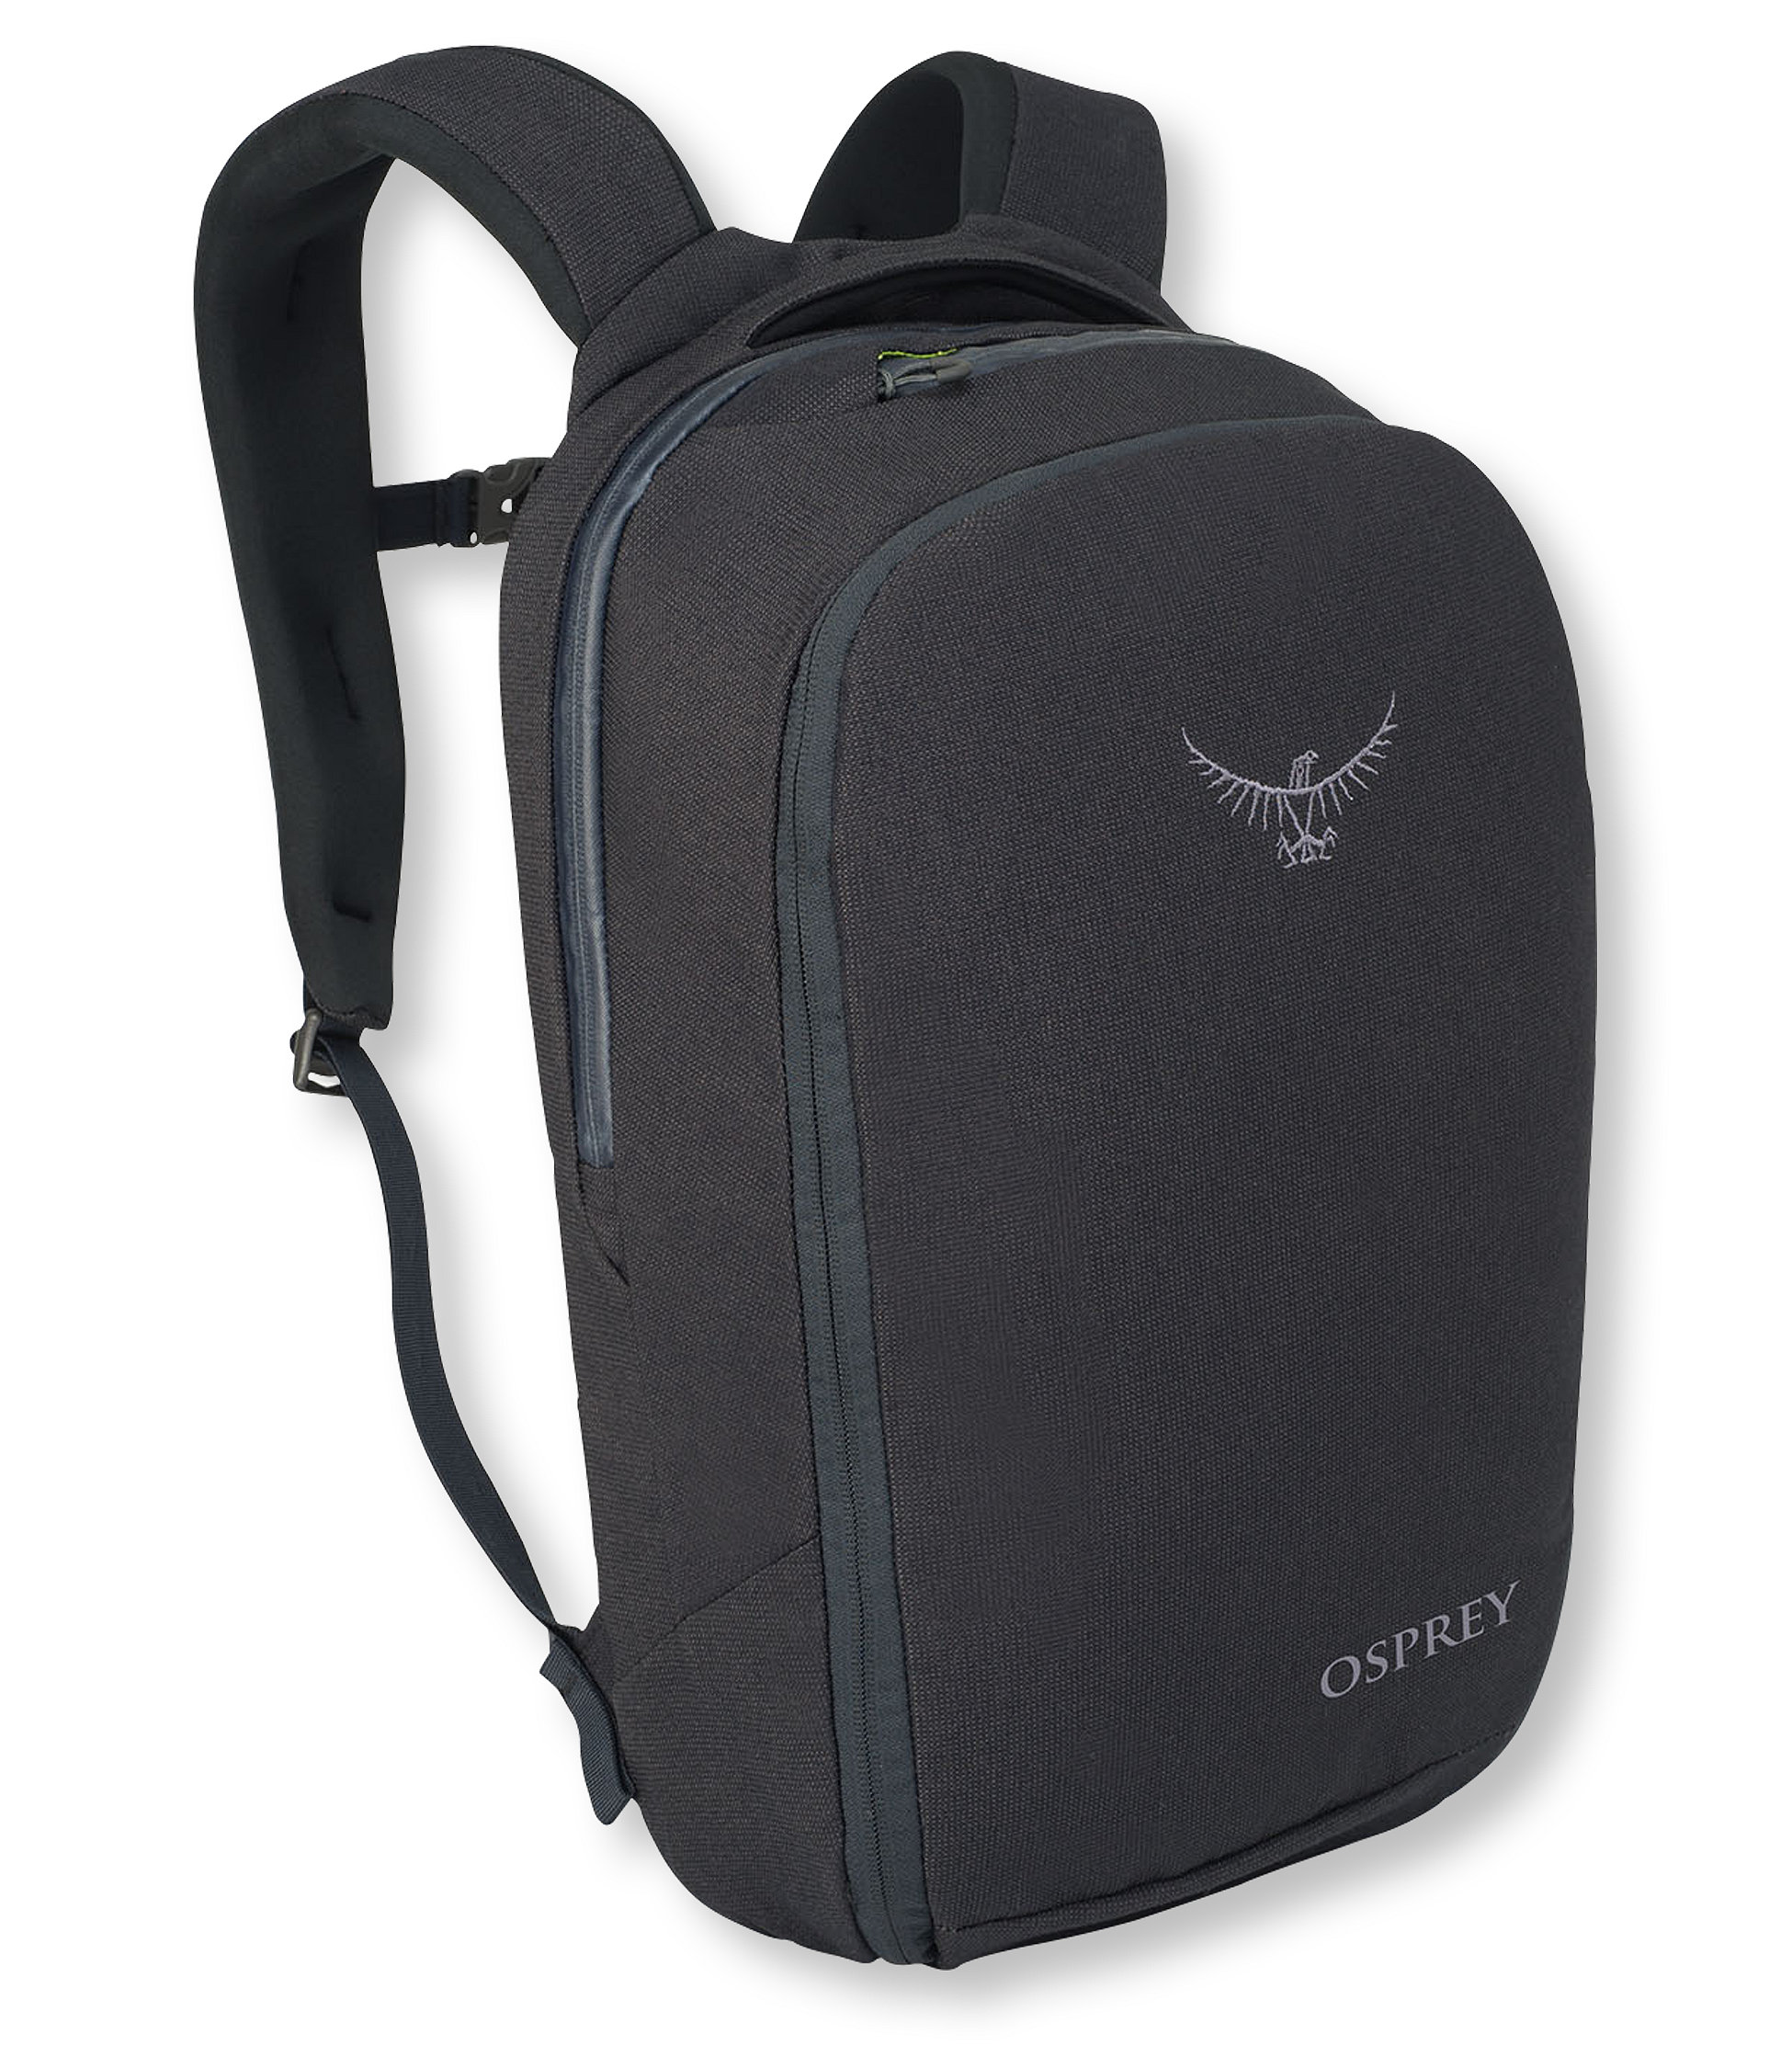 Osprey Cyber Port